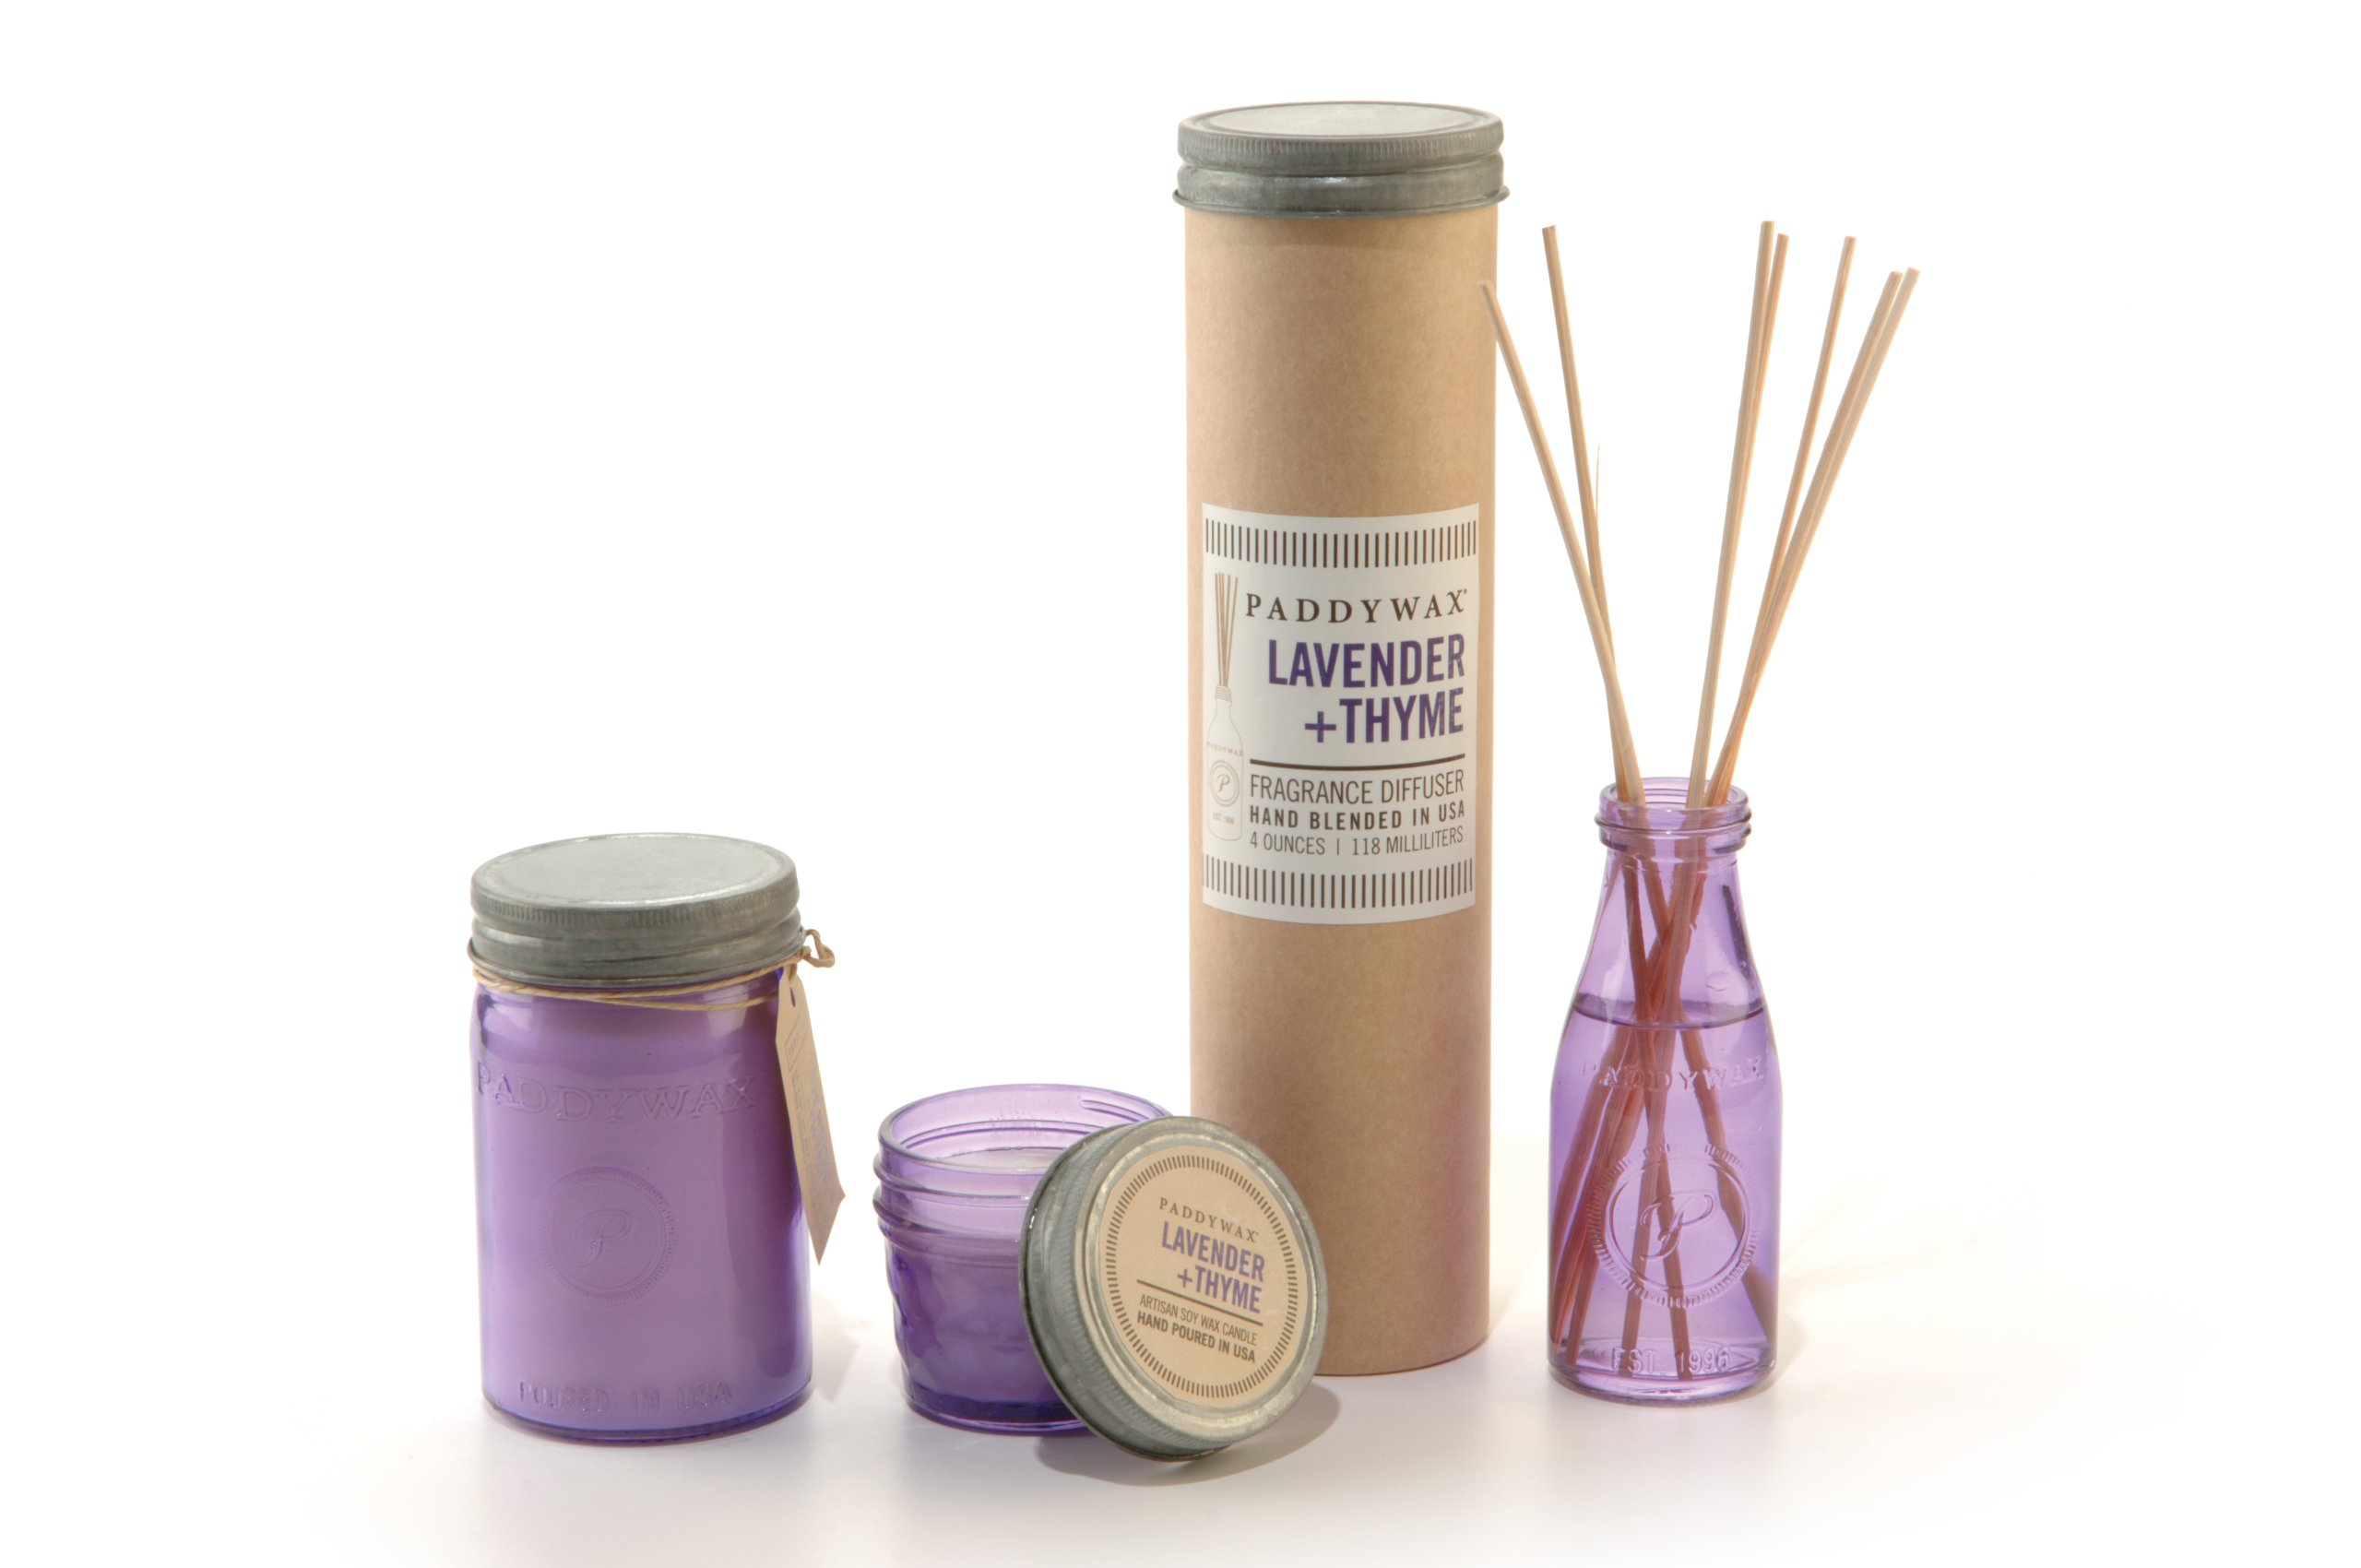 Paddywax Relish Collection Scented Soy Wax Jar Candle, 9.5-Ounce, Lavender & Thyme by Paddywax Candles (Image #2)